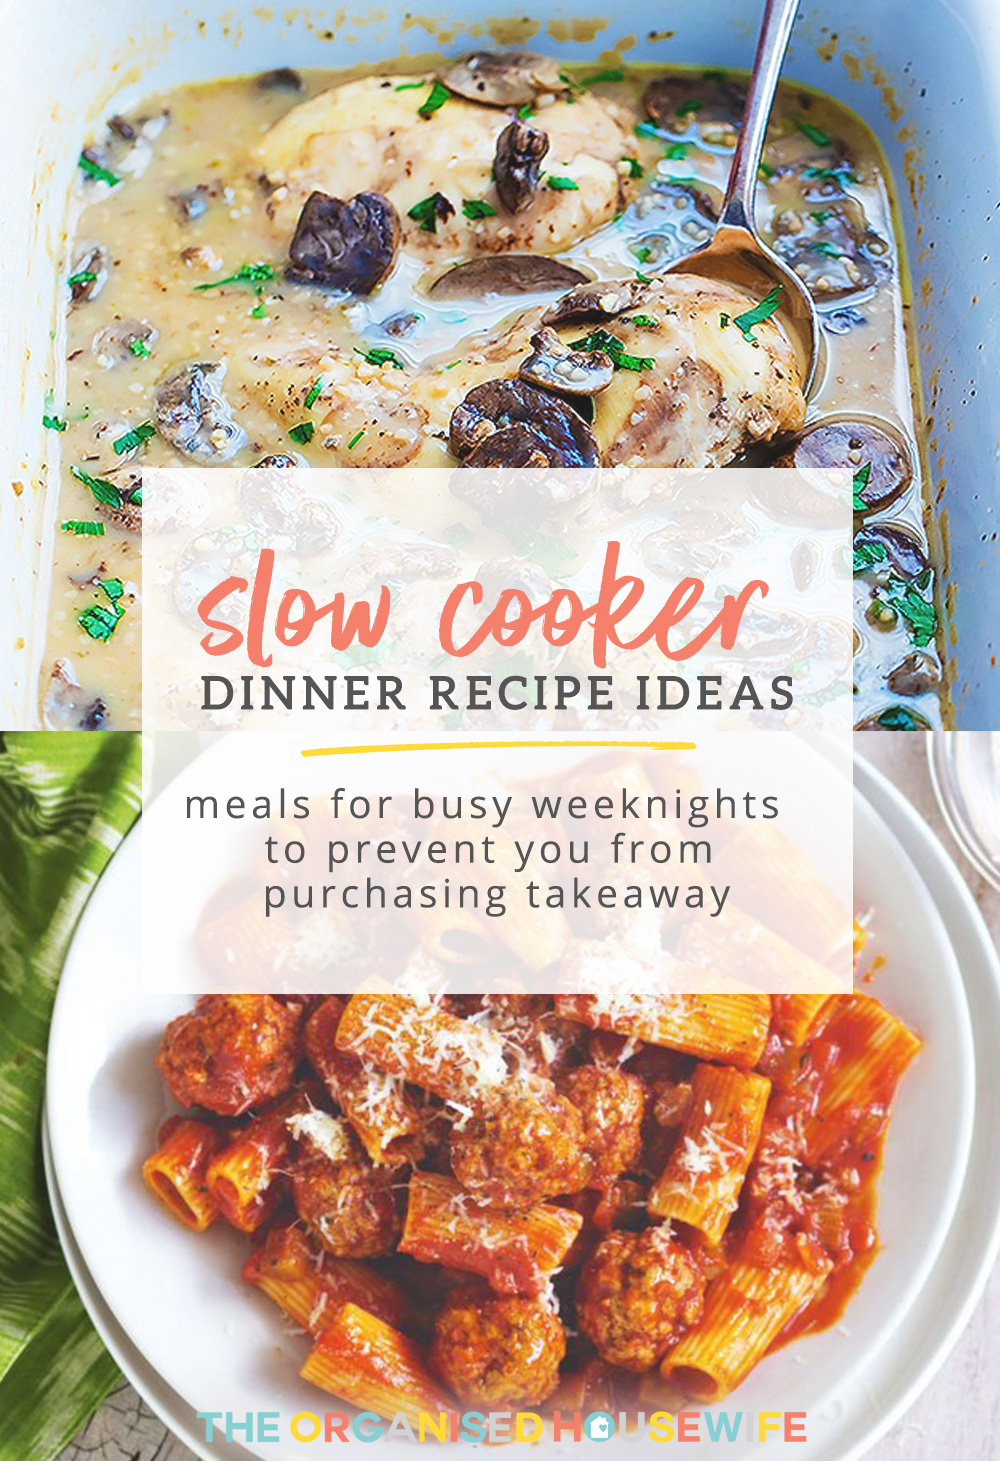 There's nothing like walking into a house filled with the delicious smell of dinner! I've put together a list of some of my favourite slow cooker recipes - I hope your family loves them as much as mine.